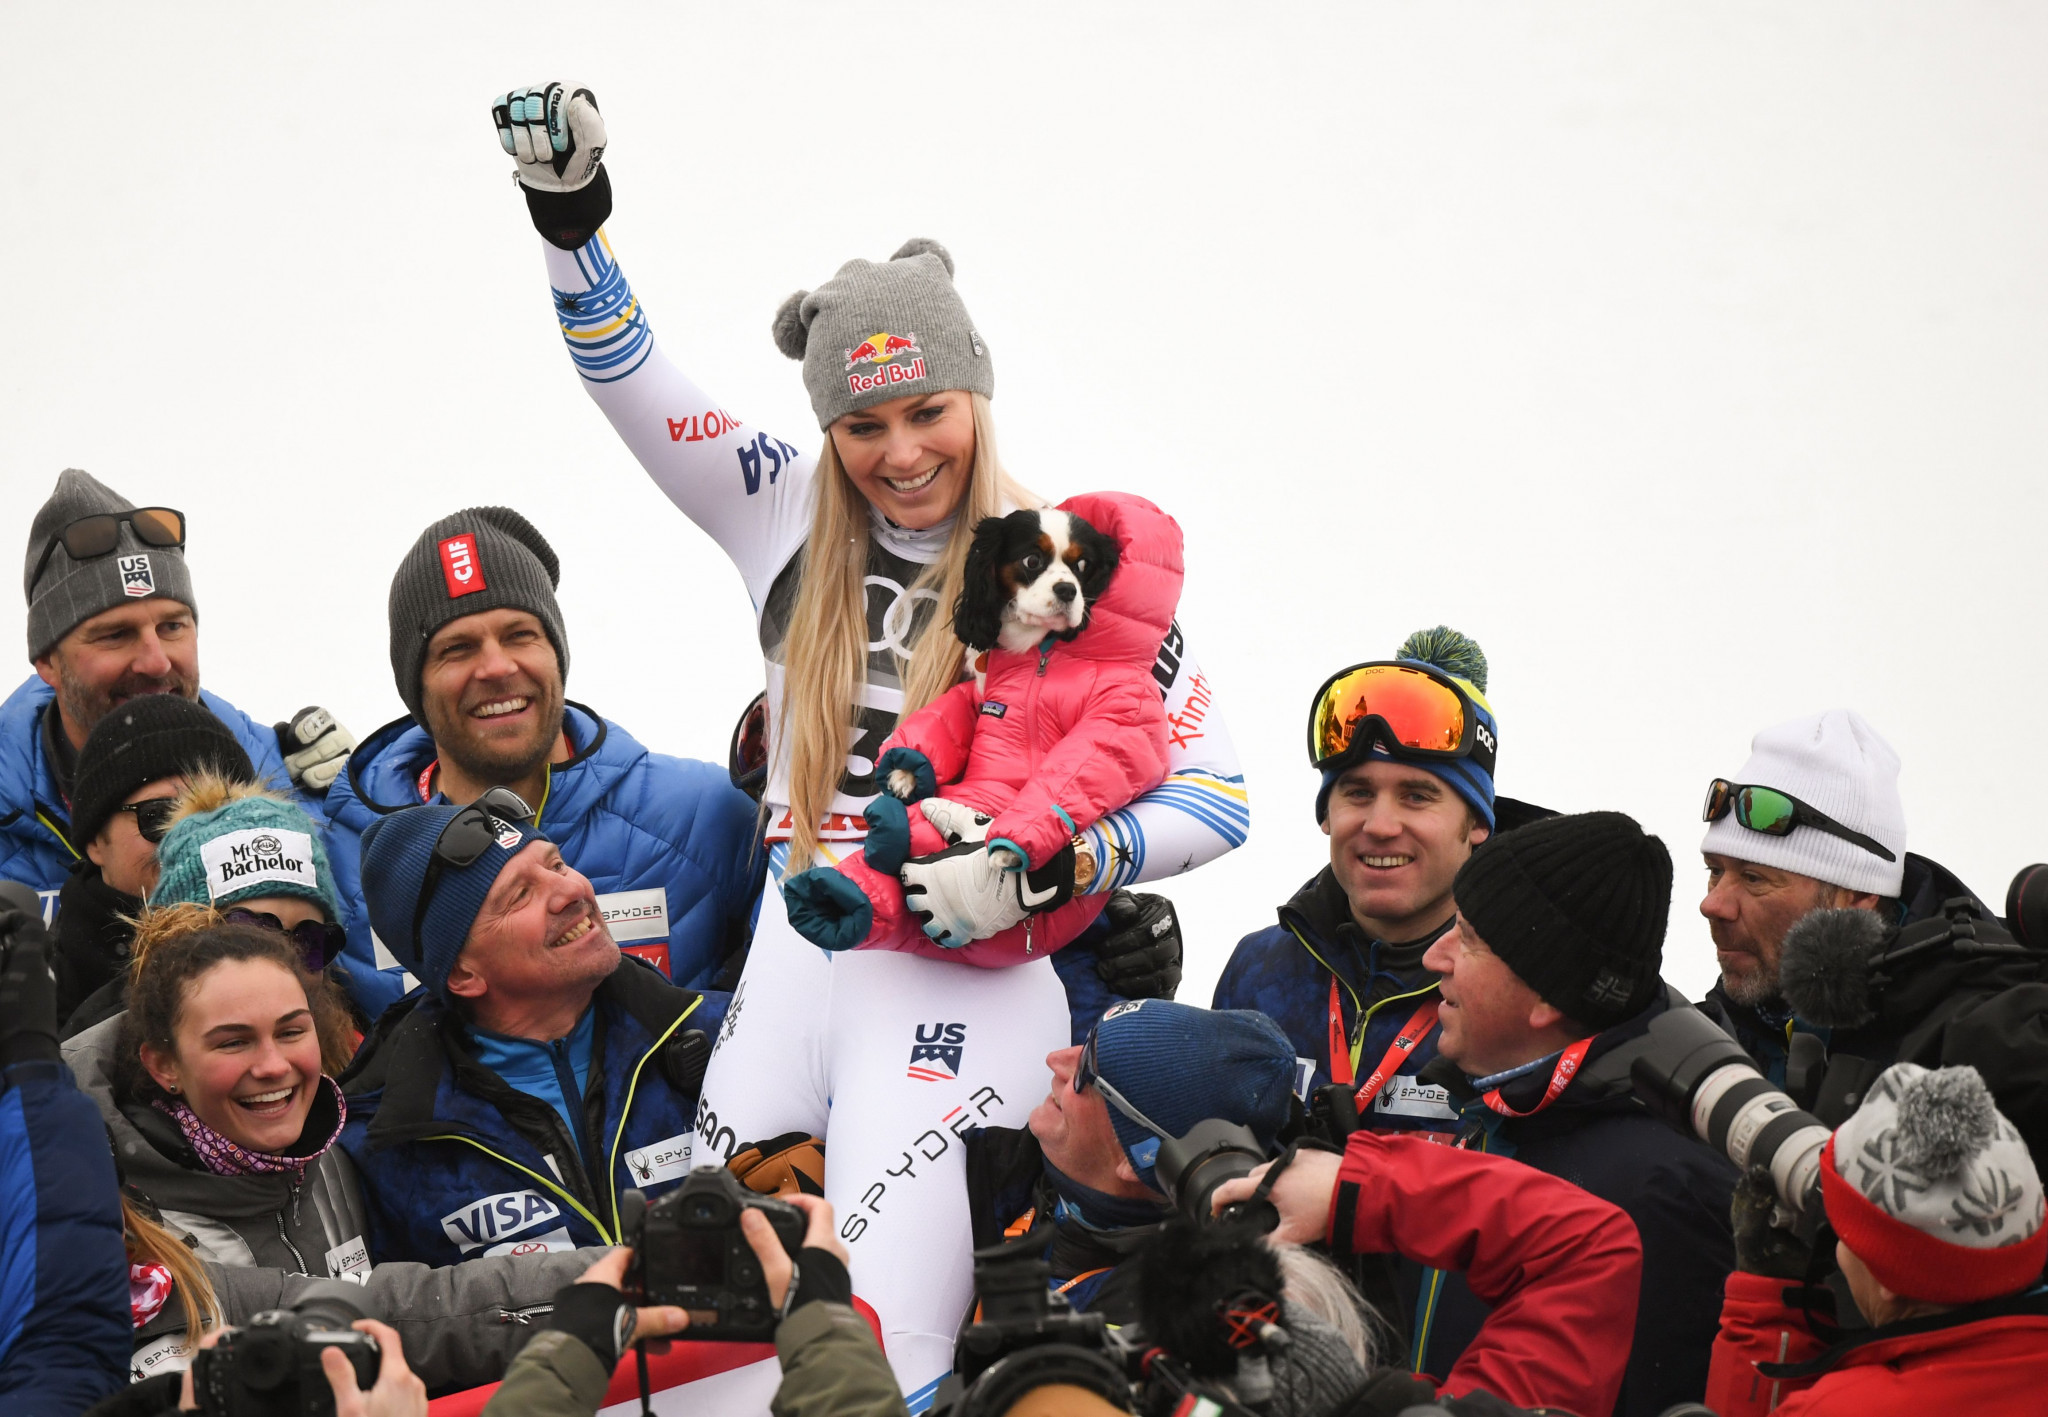 Lindsey Vonn concluded her career with a final podium finish ©Getty Images